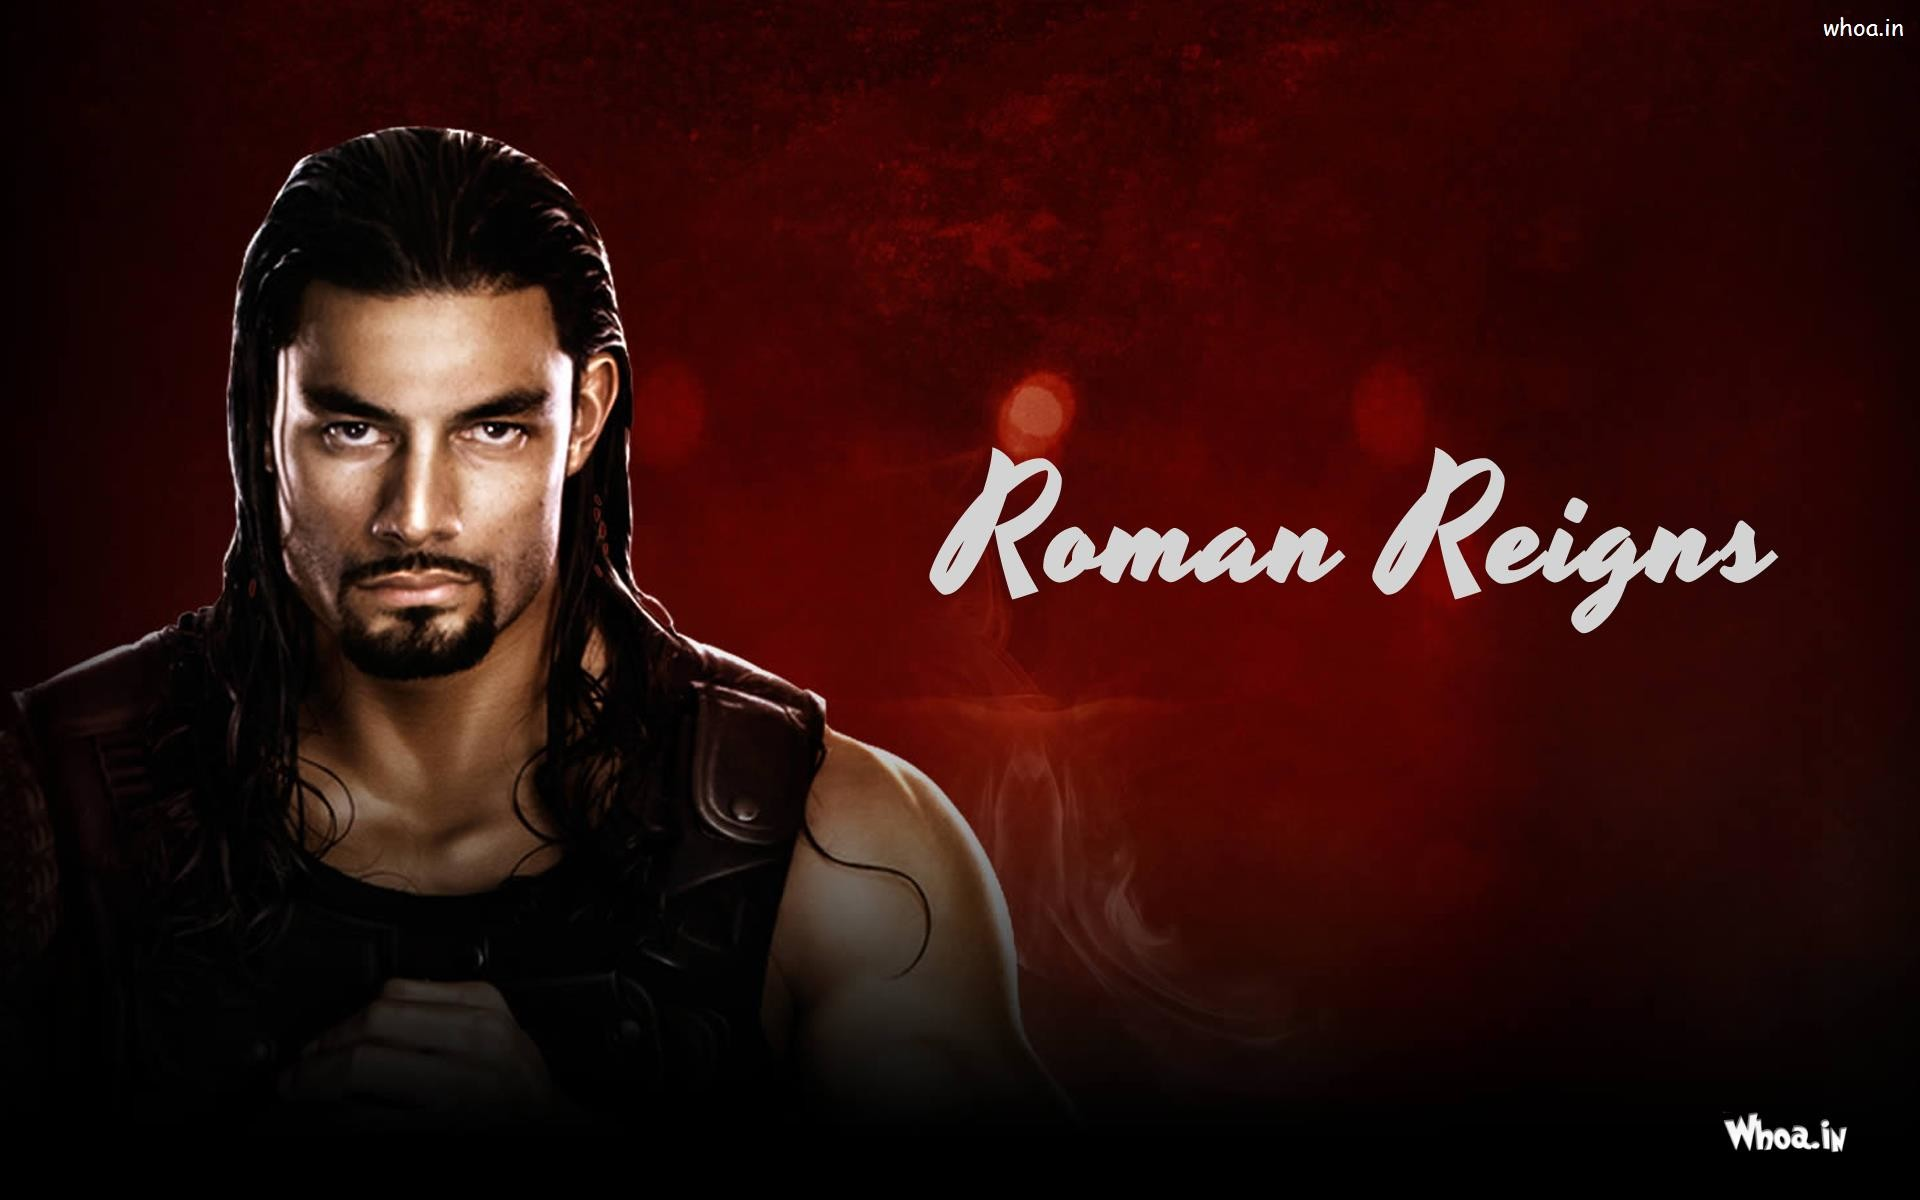 1920x1200 ... Roman Reigns Red Background Wallpaper